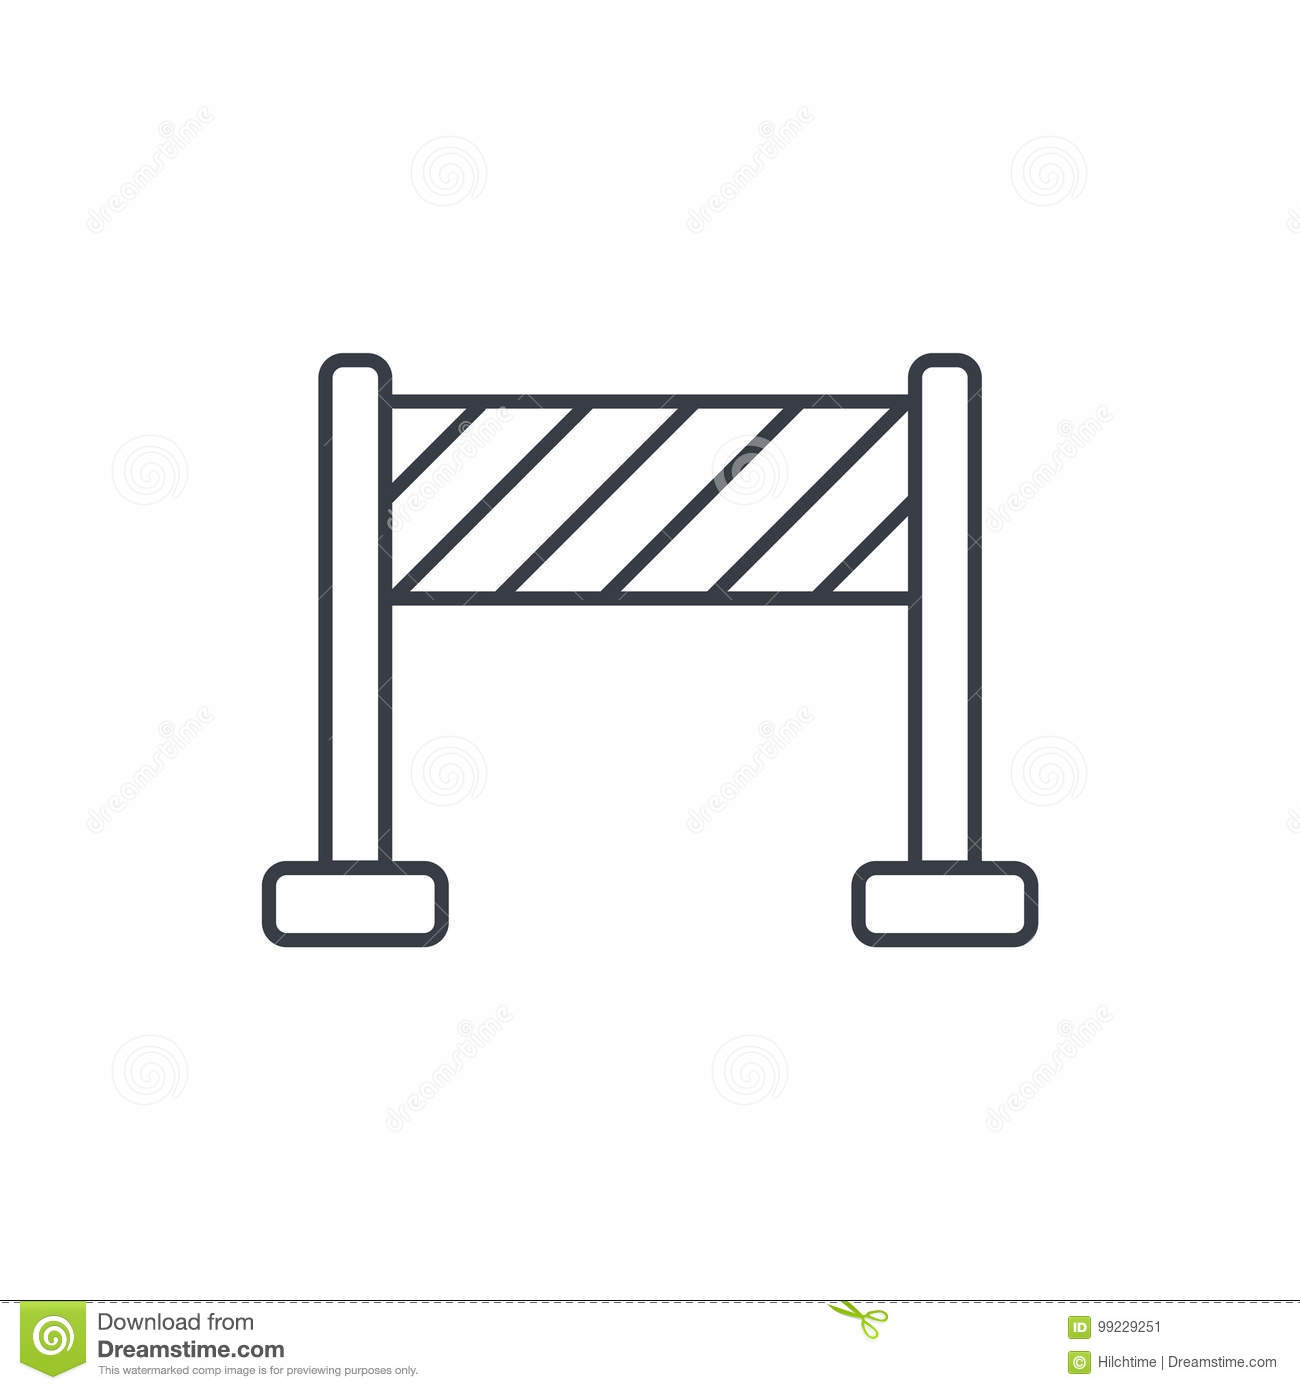 Fence construction thin line icon. Linear vector symbol